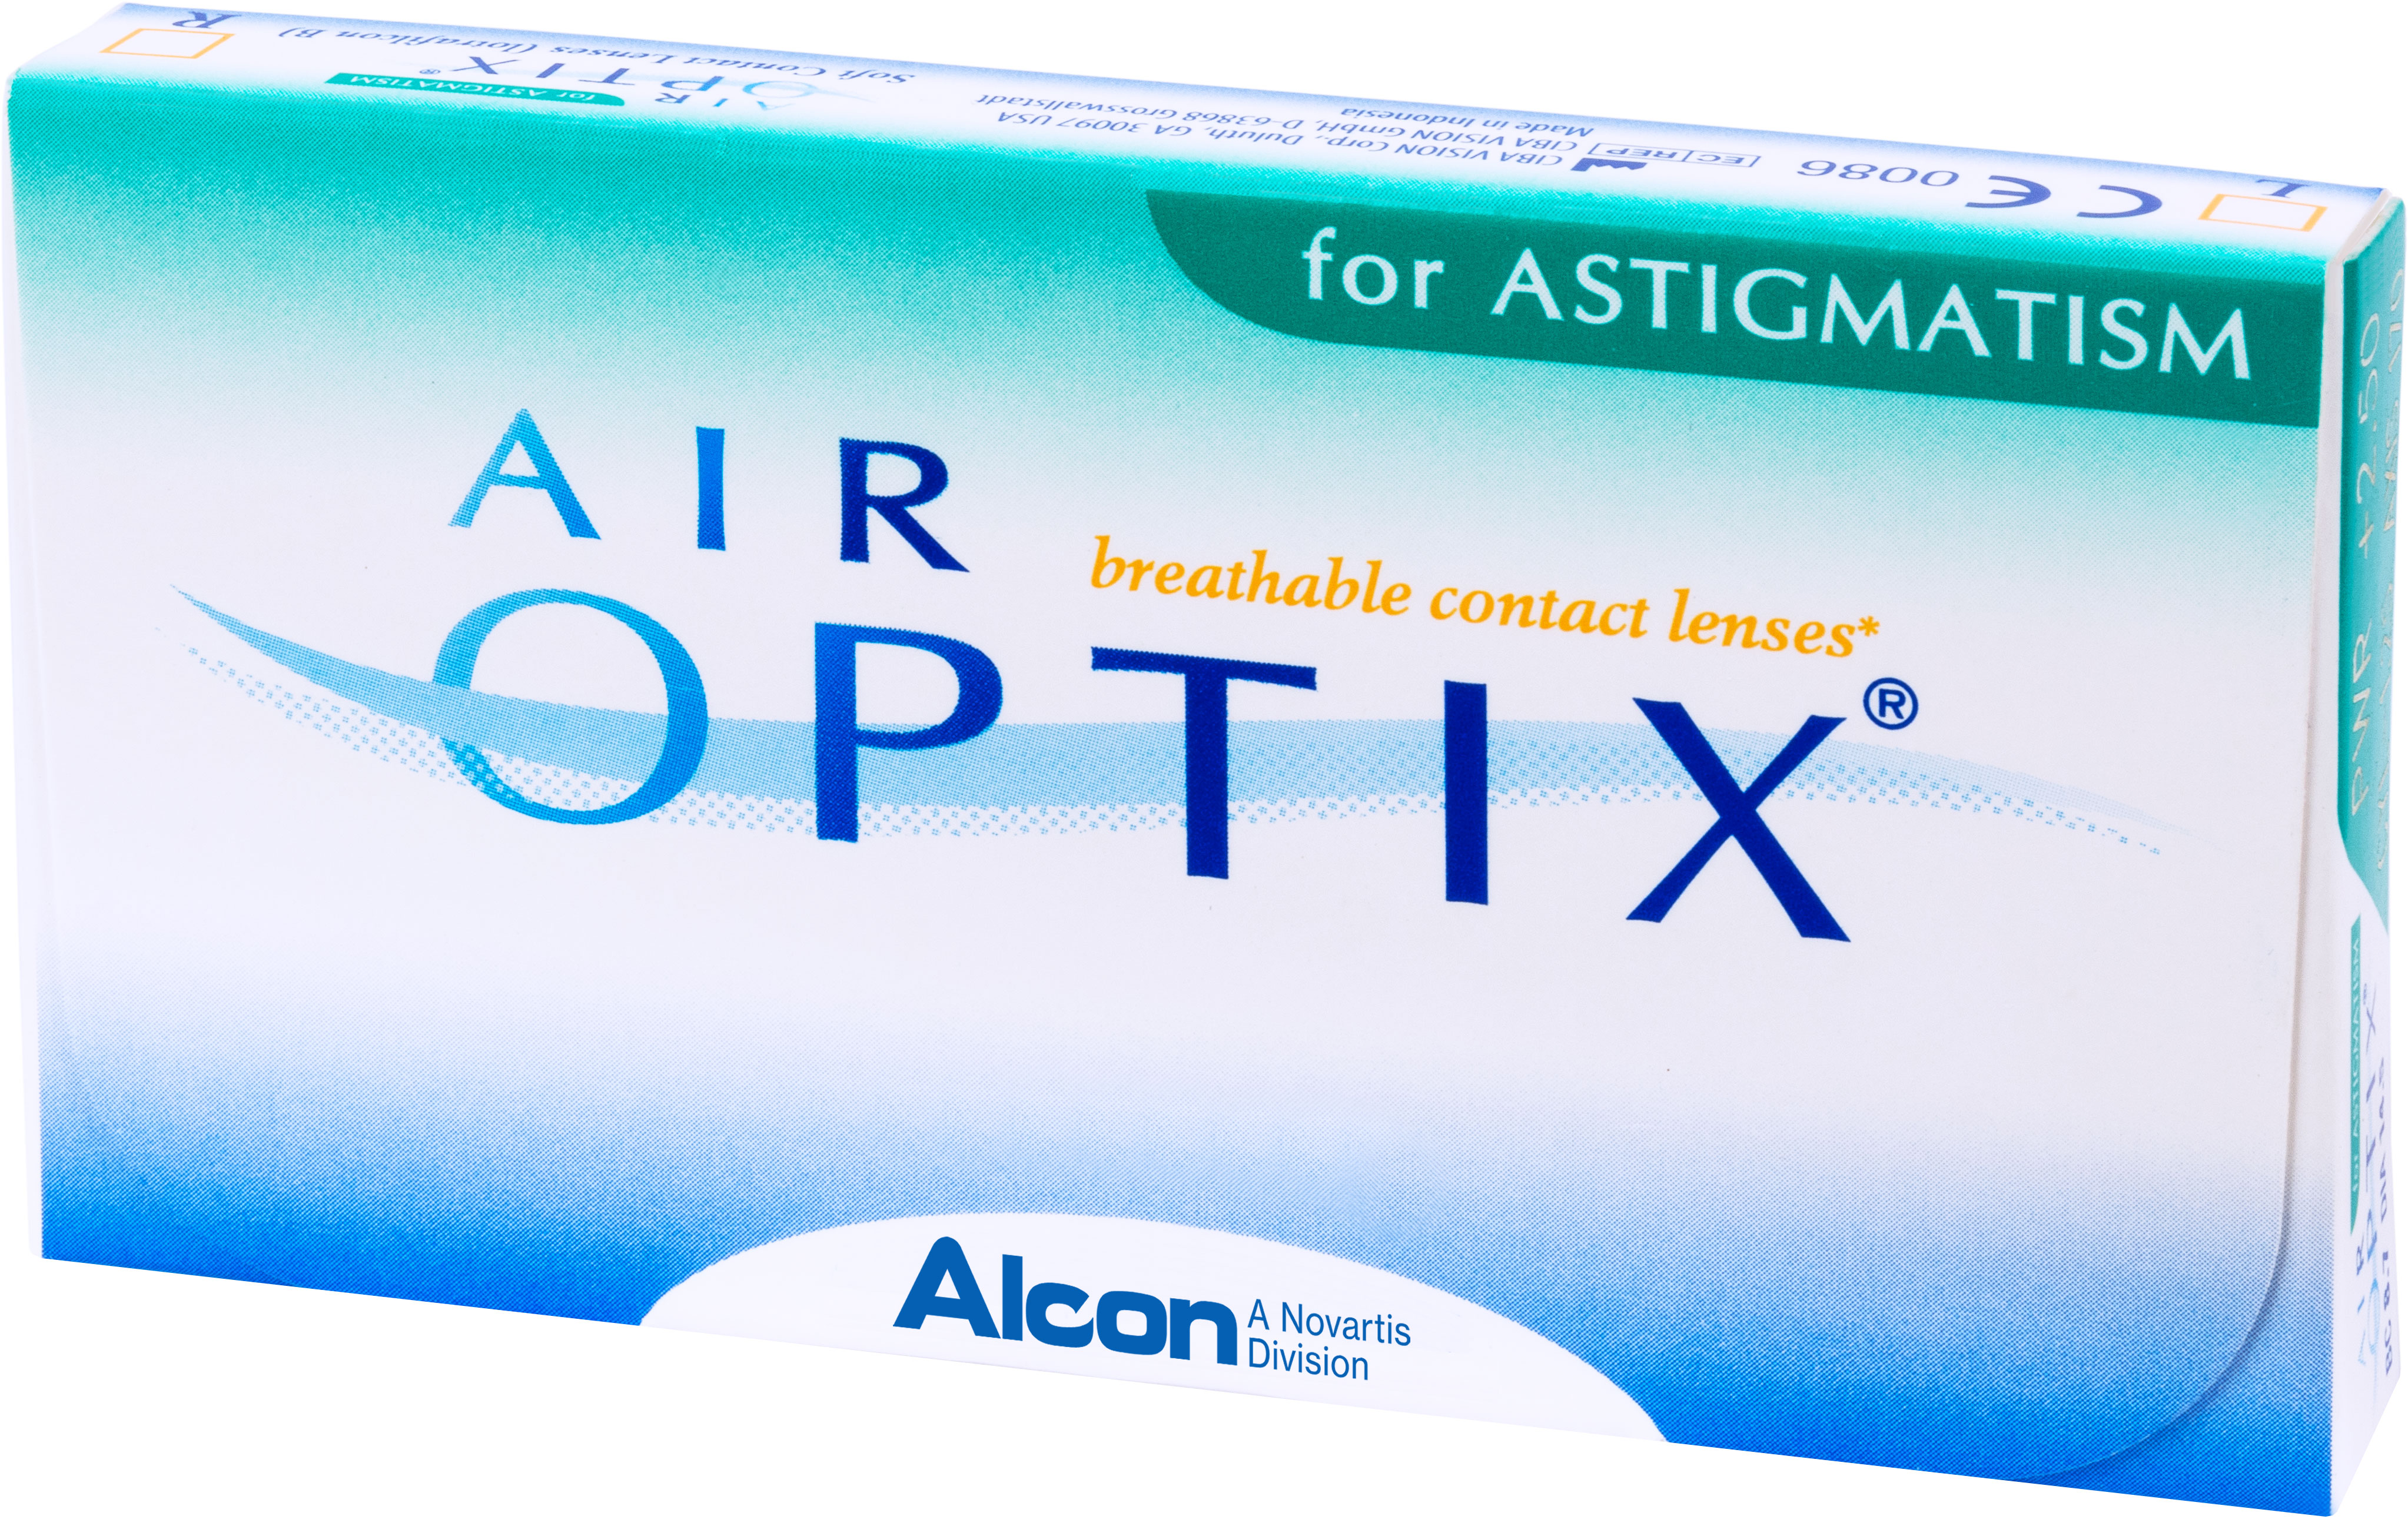 Аlcon контактные линзы Air Optix for Astigmatism 3pk /BC 8.7/DIA14.5/PWR -5.25/CYL -0.75/AXIS 150100047468with Hydraclear